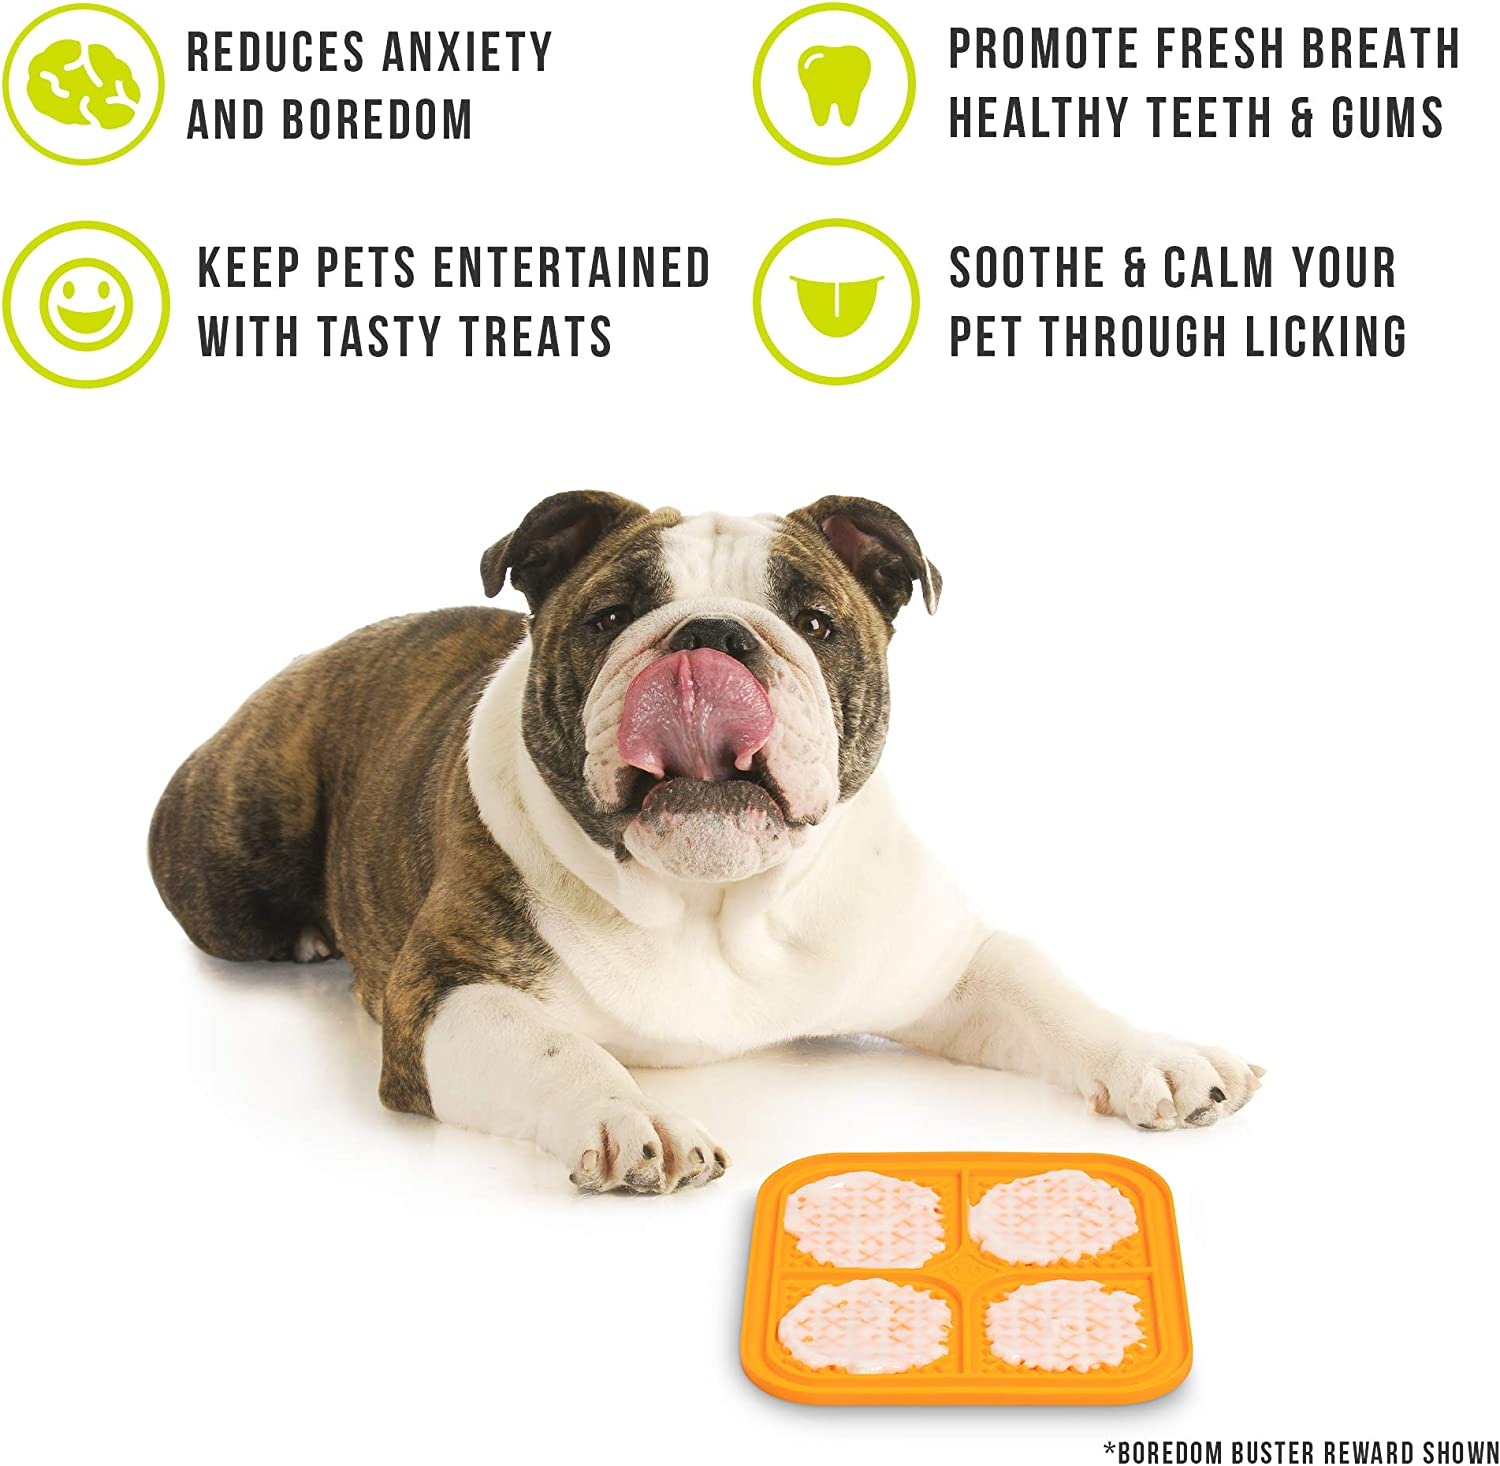 Calming Mat for Anxiety Relief Hyper Pet Licking Mat for Dogs /& Cats Just Add Healthy Treats New Version, IQ Treat Mat | Fun Alternative to Slow Feeder Dog Bowls Boredom Buster | Made in U.S